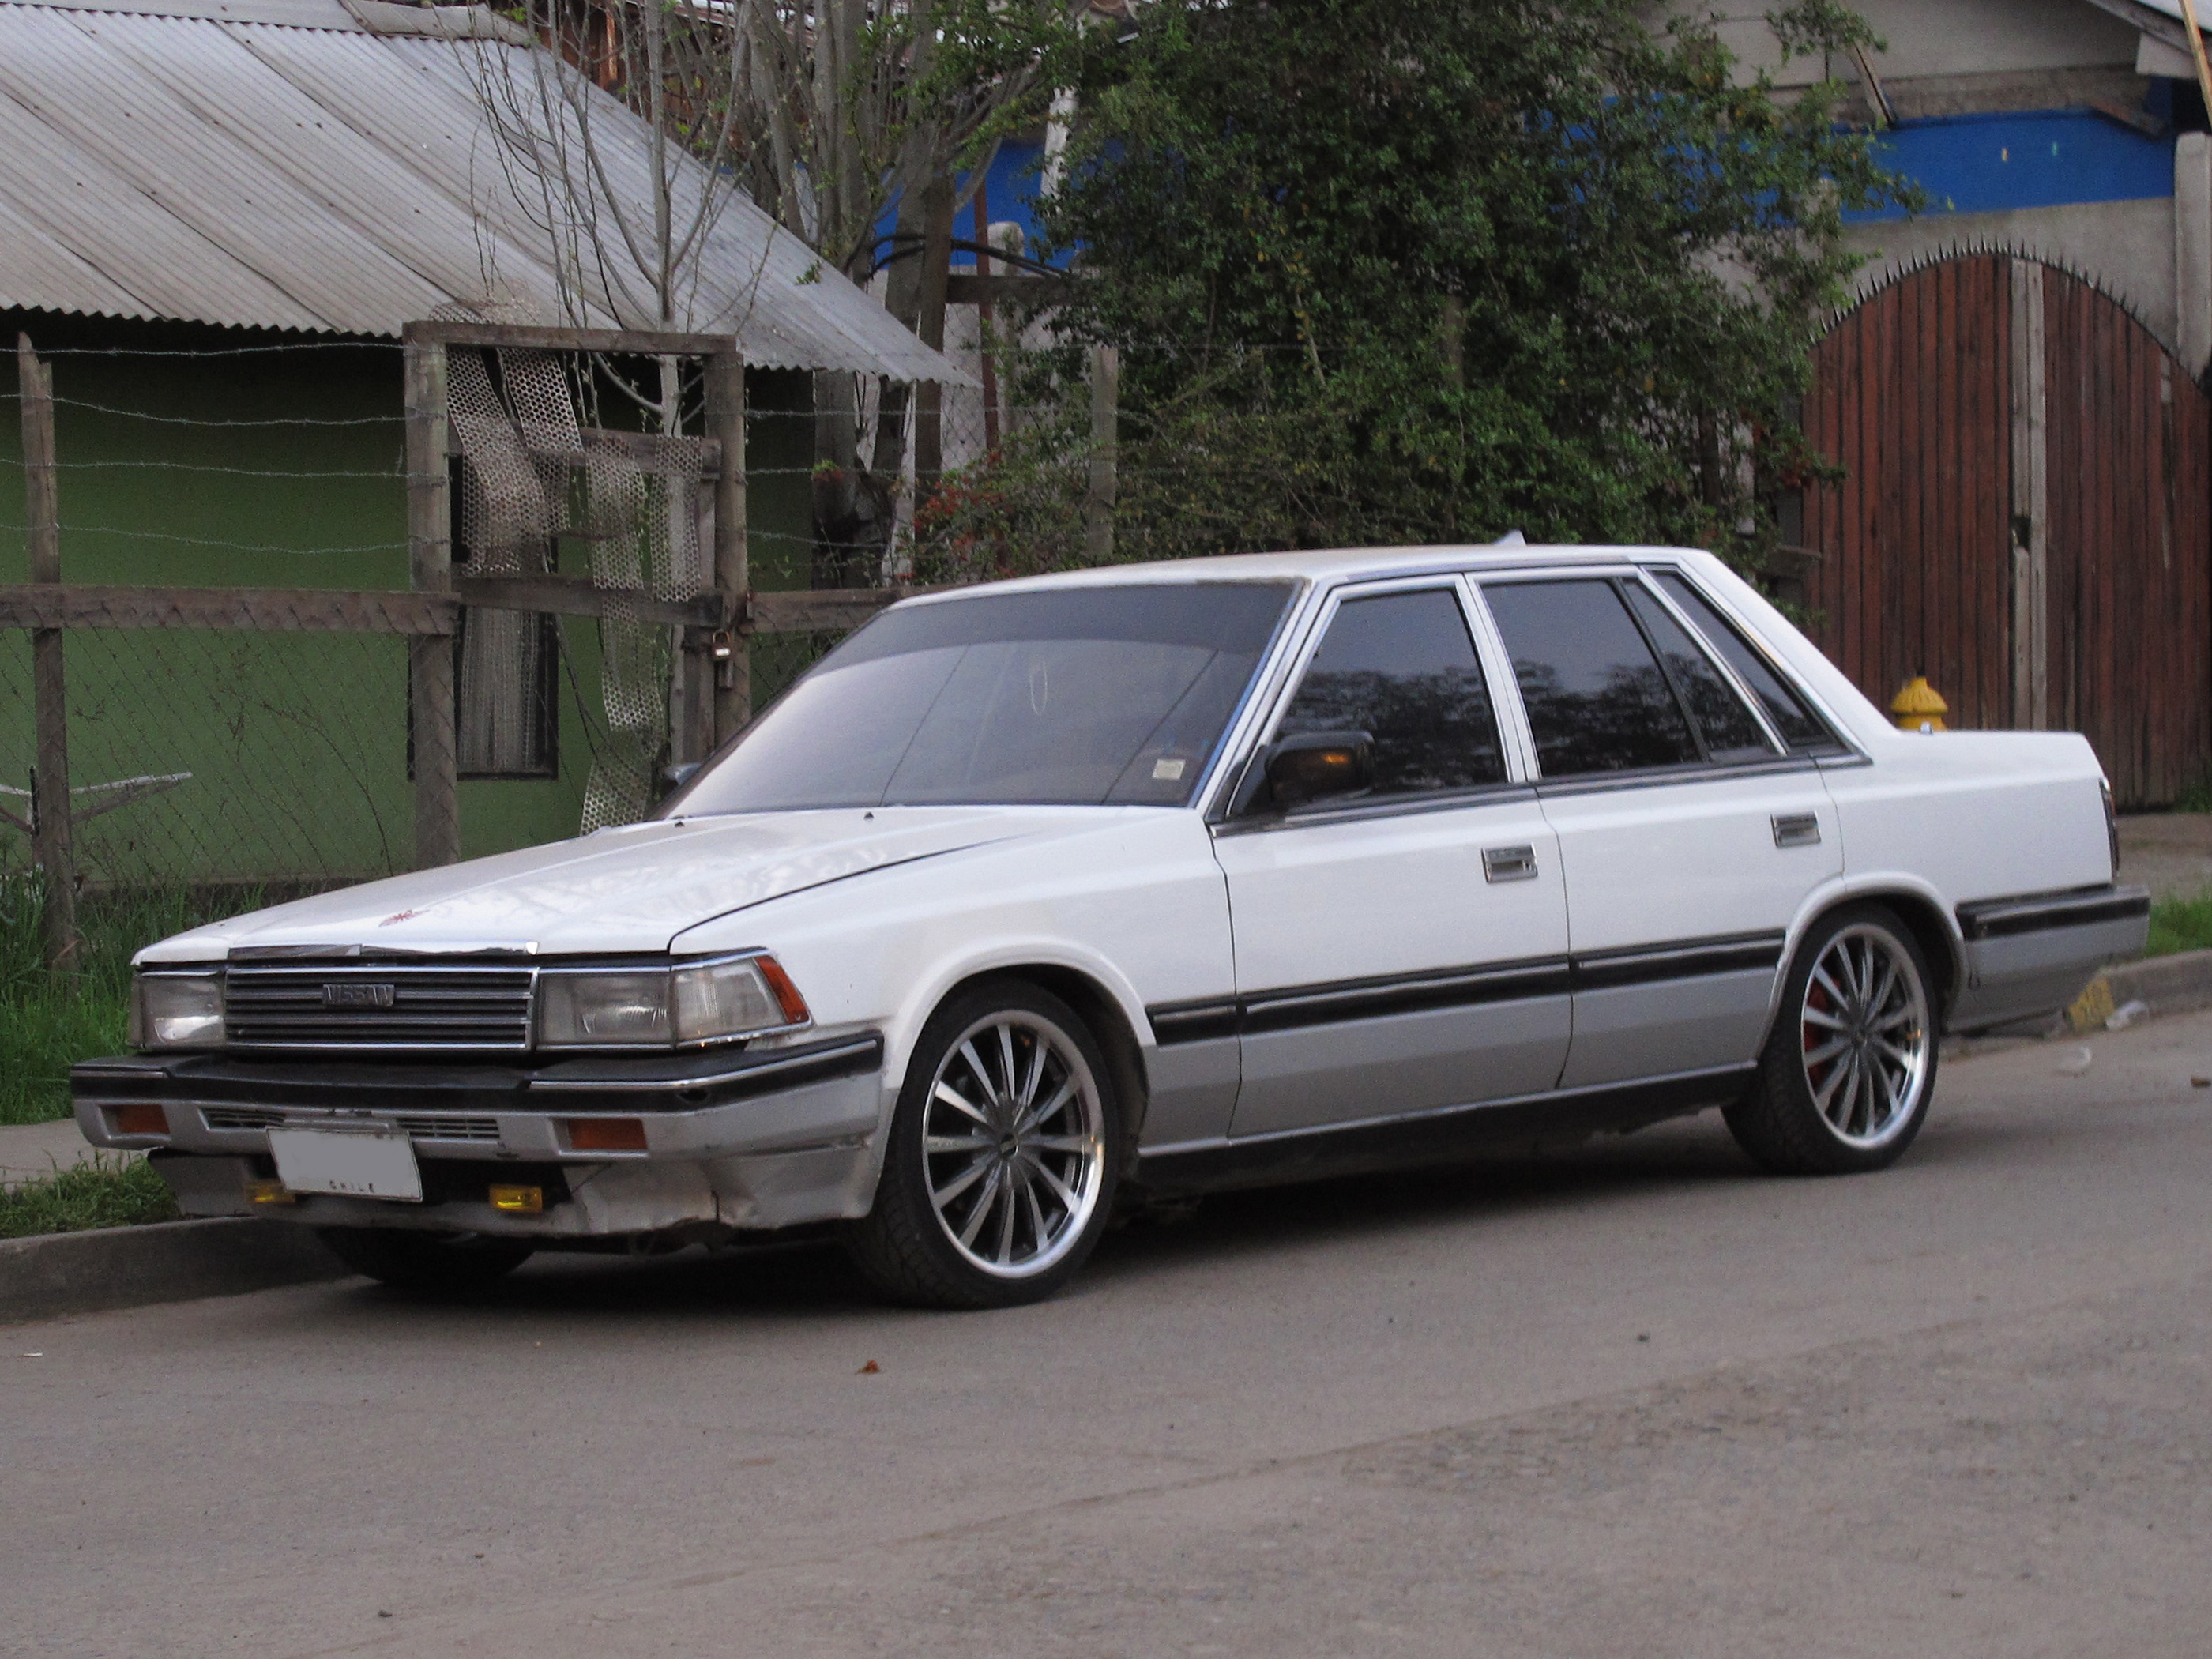 1989 Nissan Laurel #4